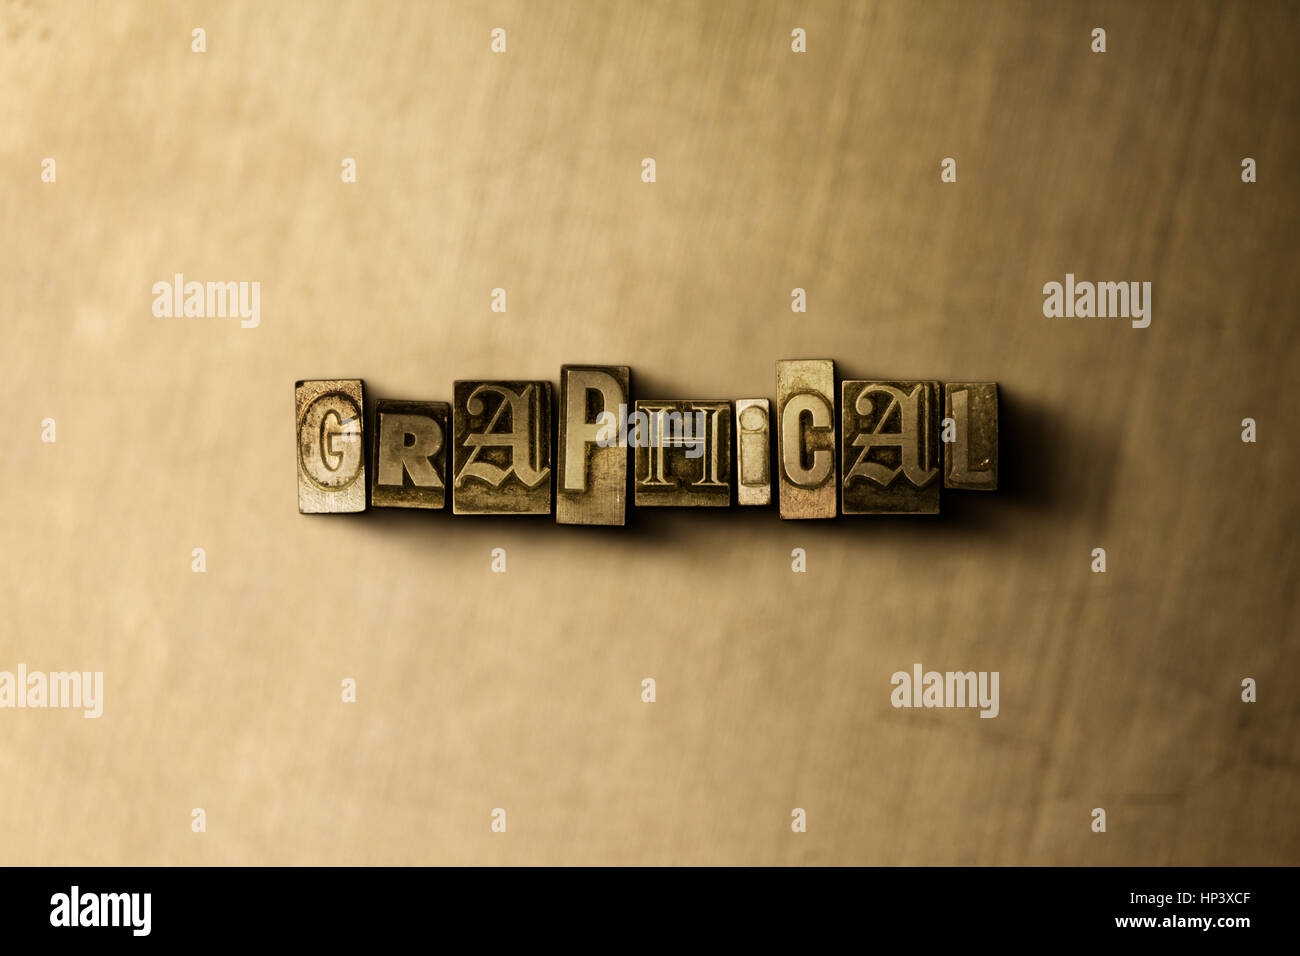 GRAPHICAL - close-up of grungy vintage typeset word on metal backdrop. Royalty free stock illustration.  Can be - Stock Image